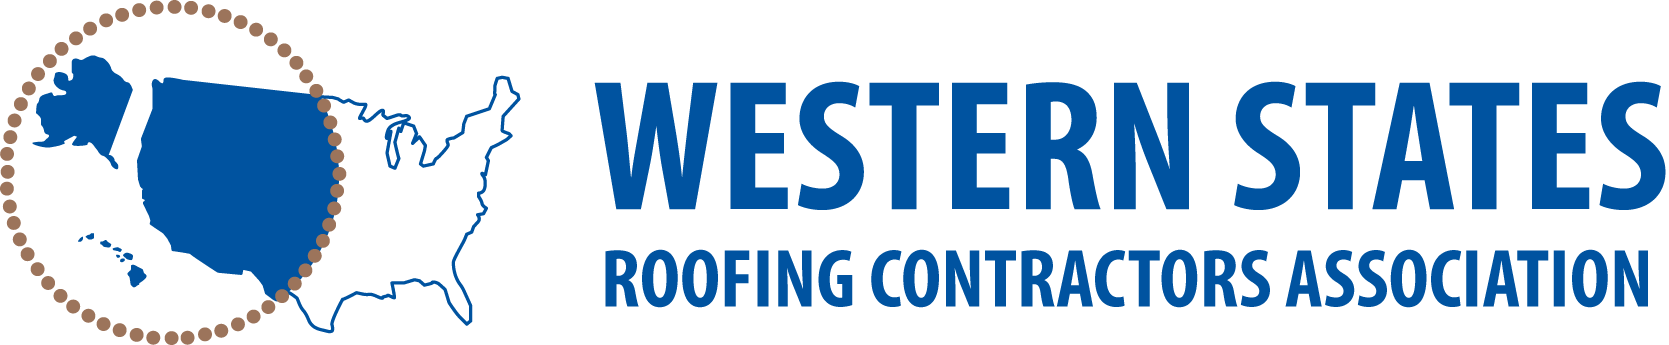 Affiliate: Western States Roofing Contractors Association